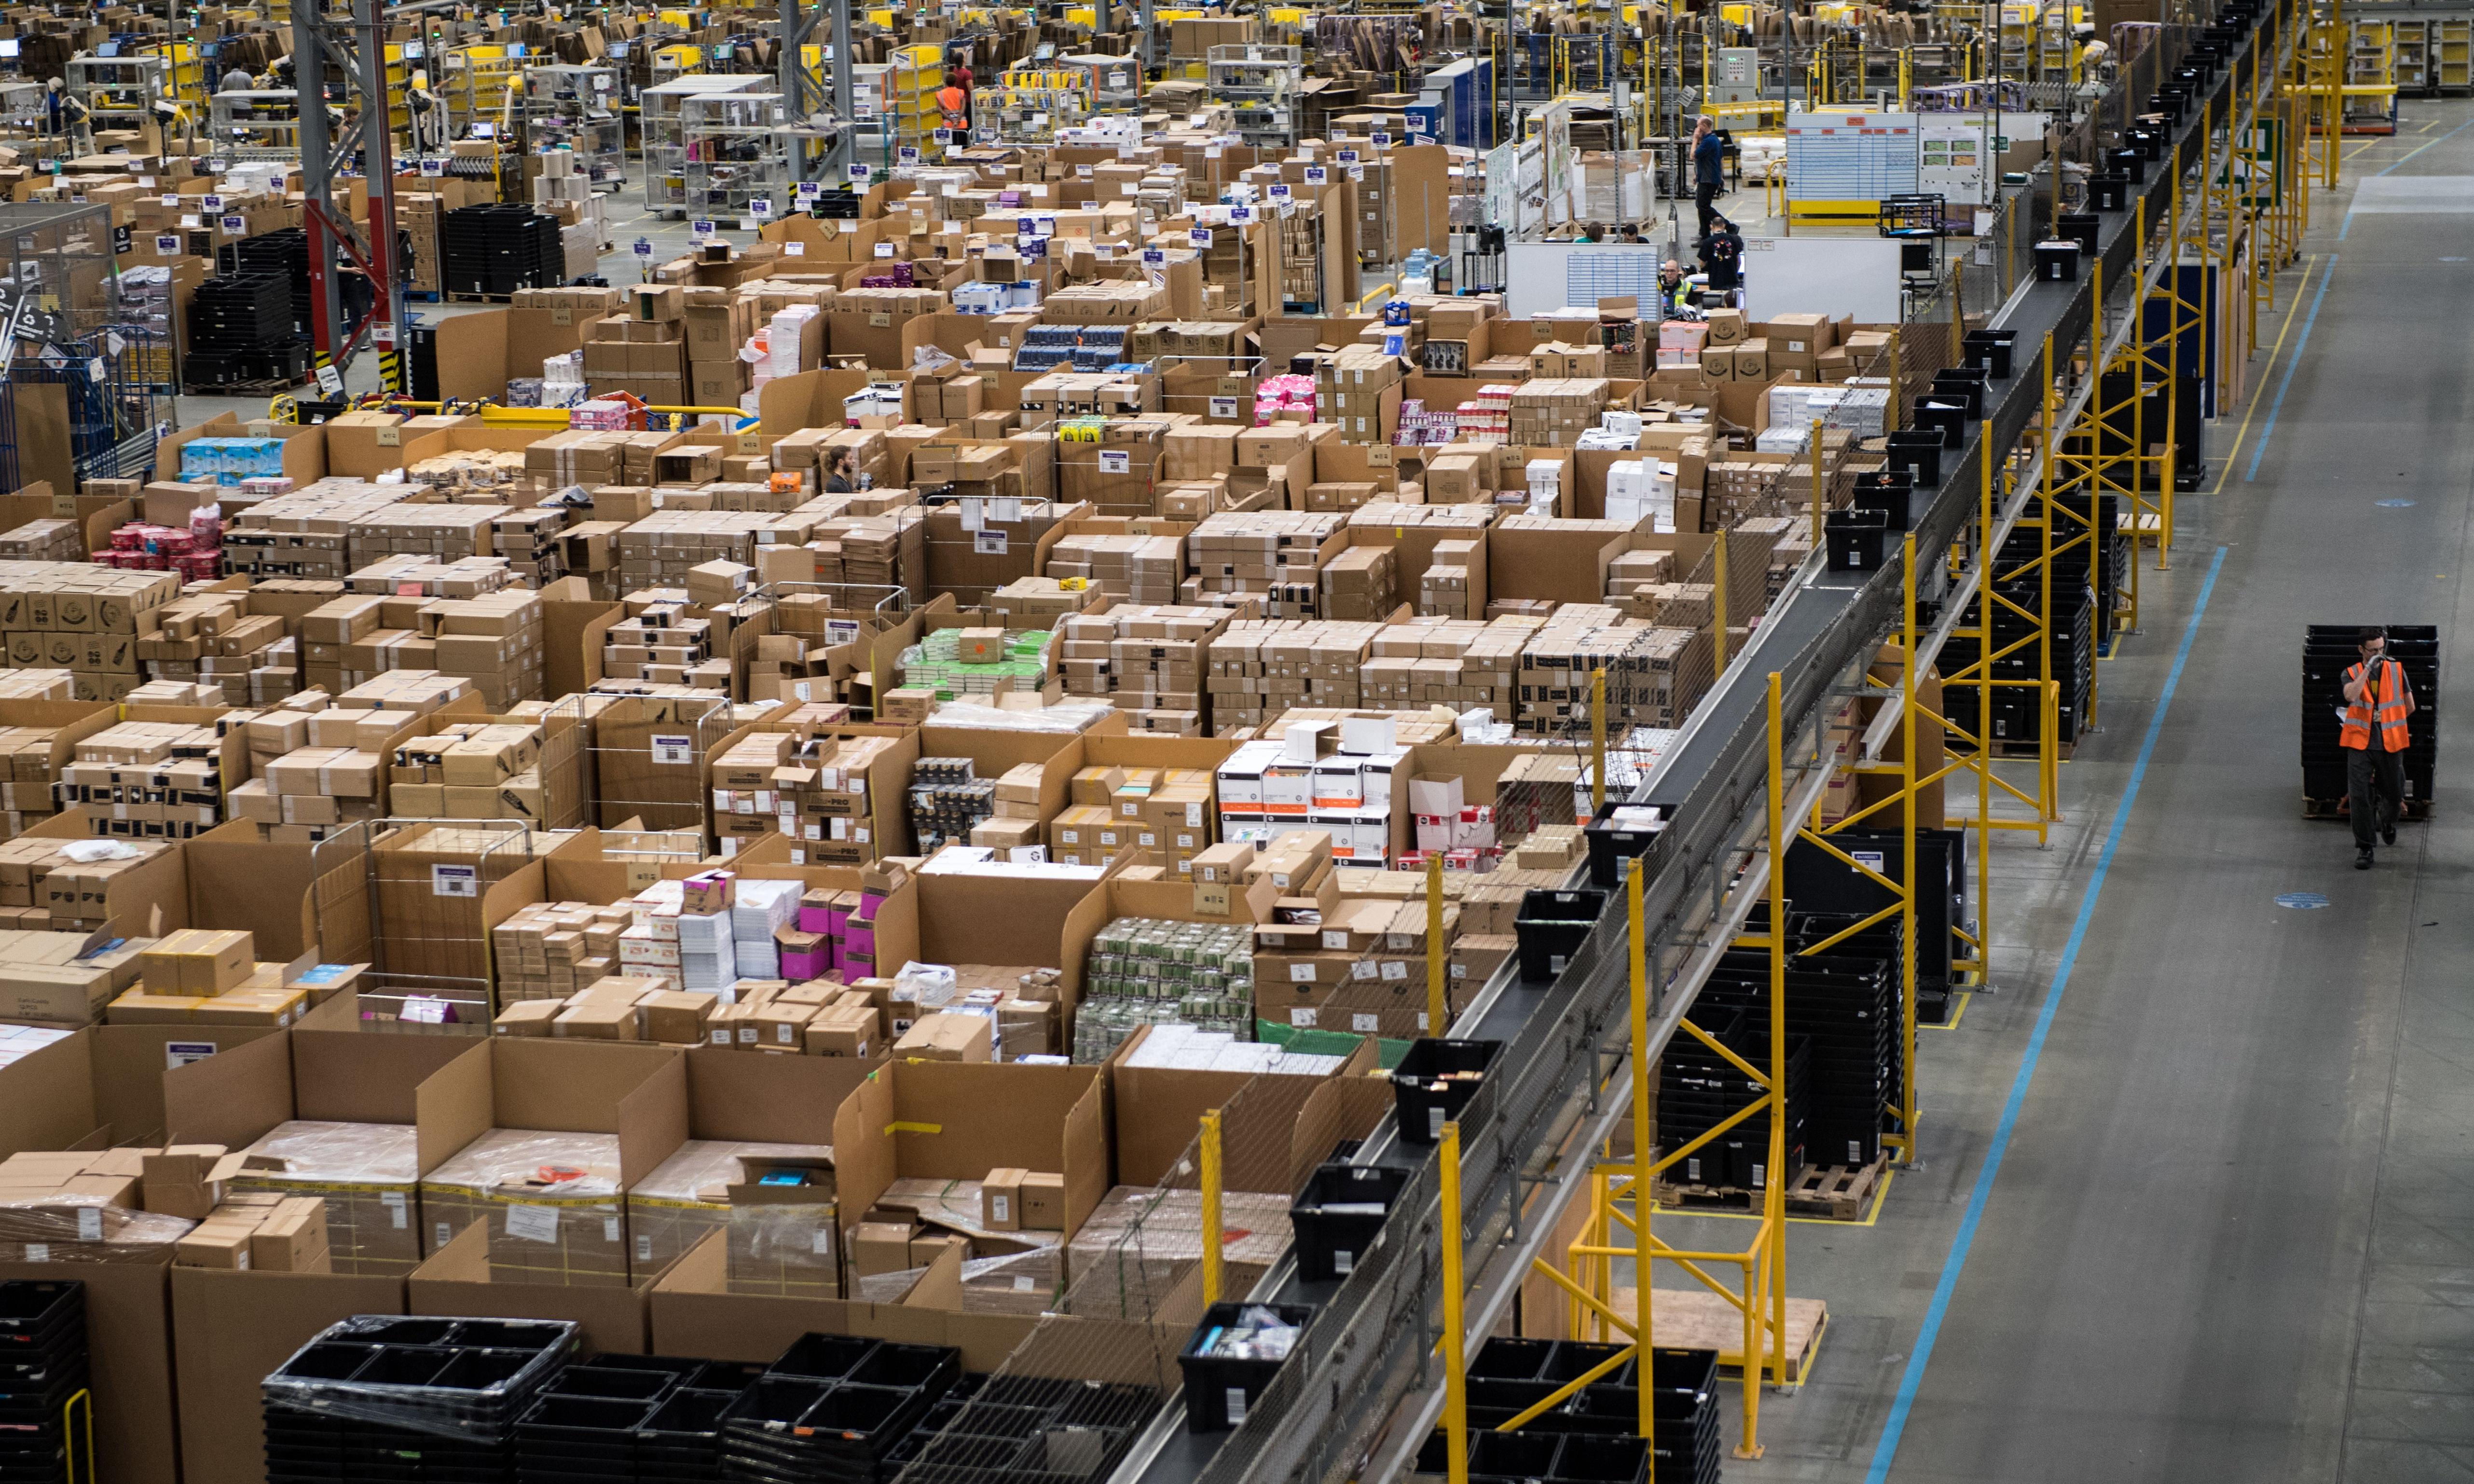 Amazon's 'worker cage' has been dropped, but its staff are not free